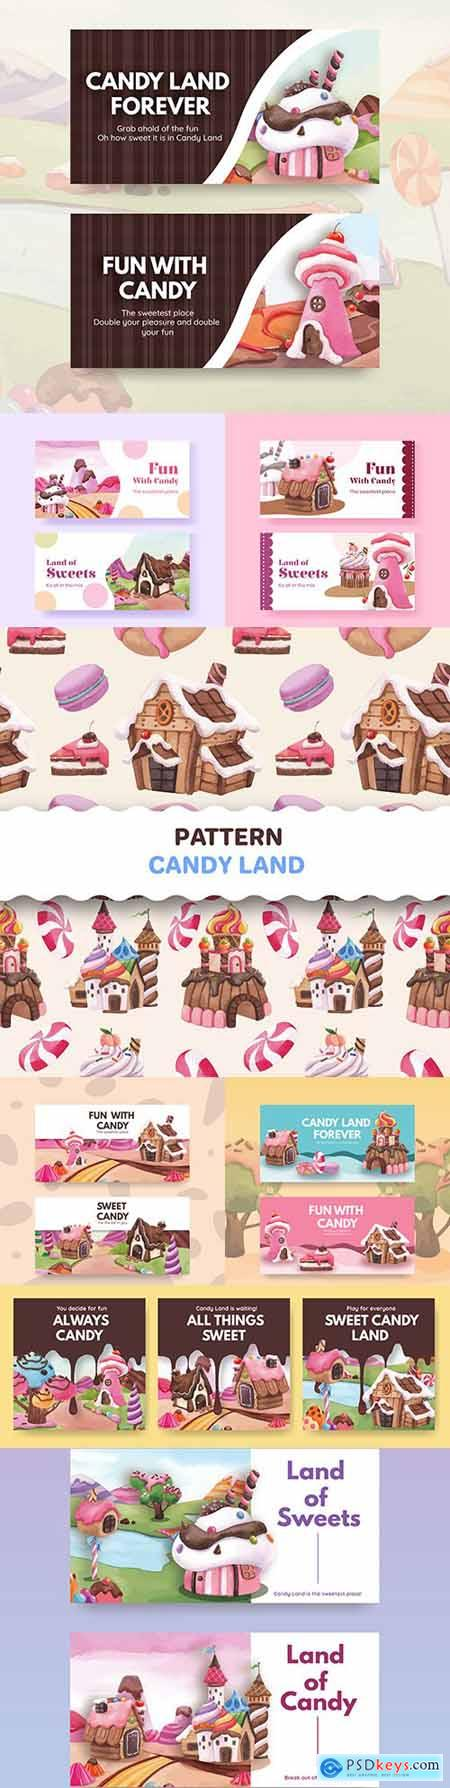 Candy land template twitter with watercolor illustration design